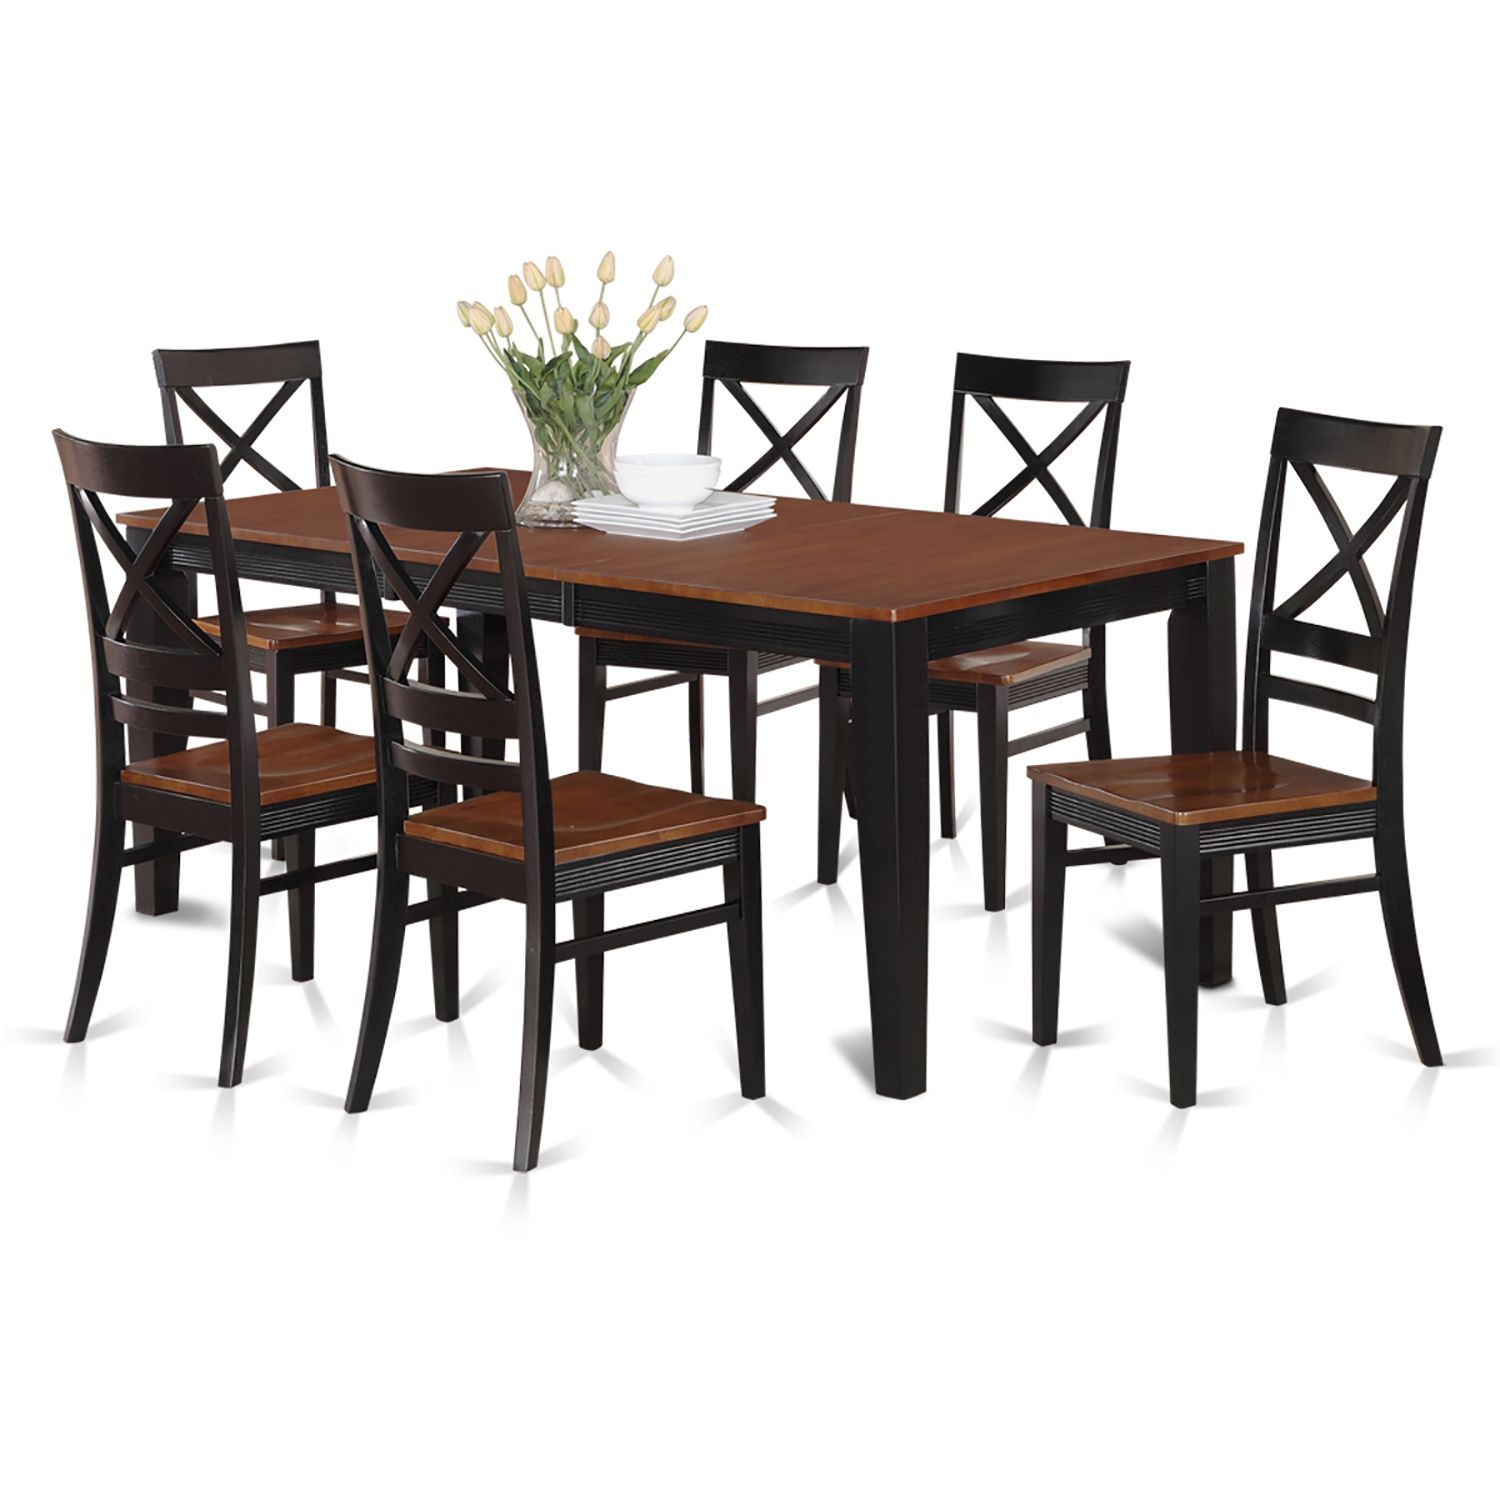 Eat In Kitchen Furniture: QUIN7-W Black/Cream/Cherry Rubberwood Dining Table And 6 Kitchen Chairs (Pack Of 7) (Brown/Black